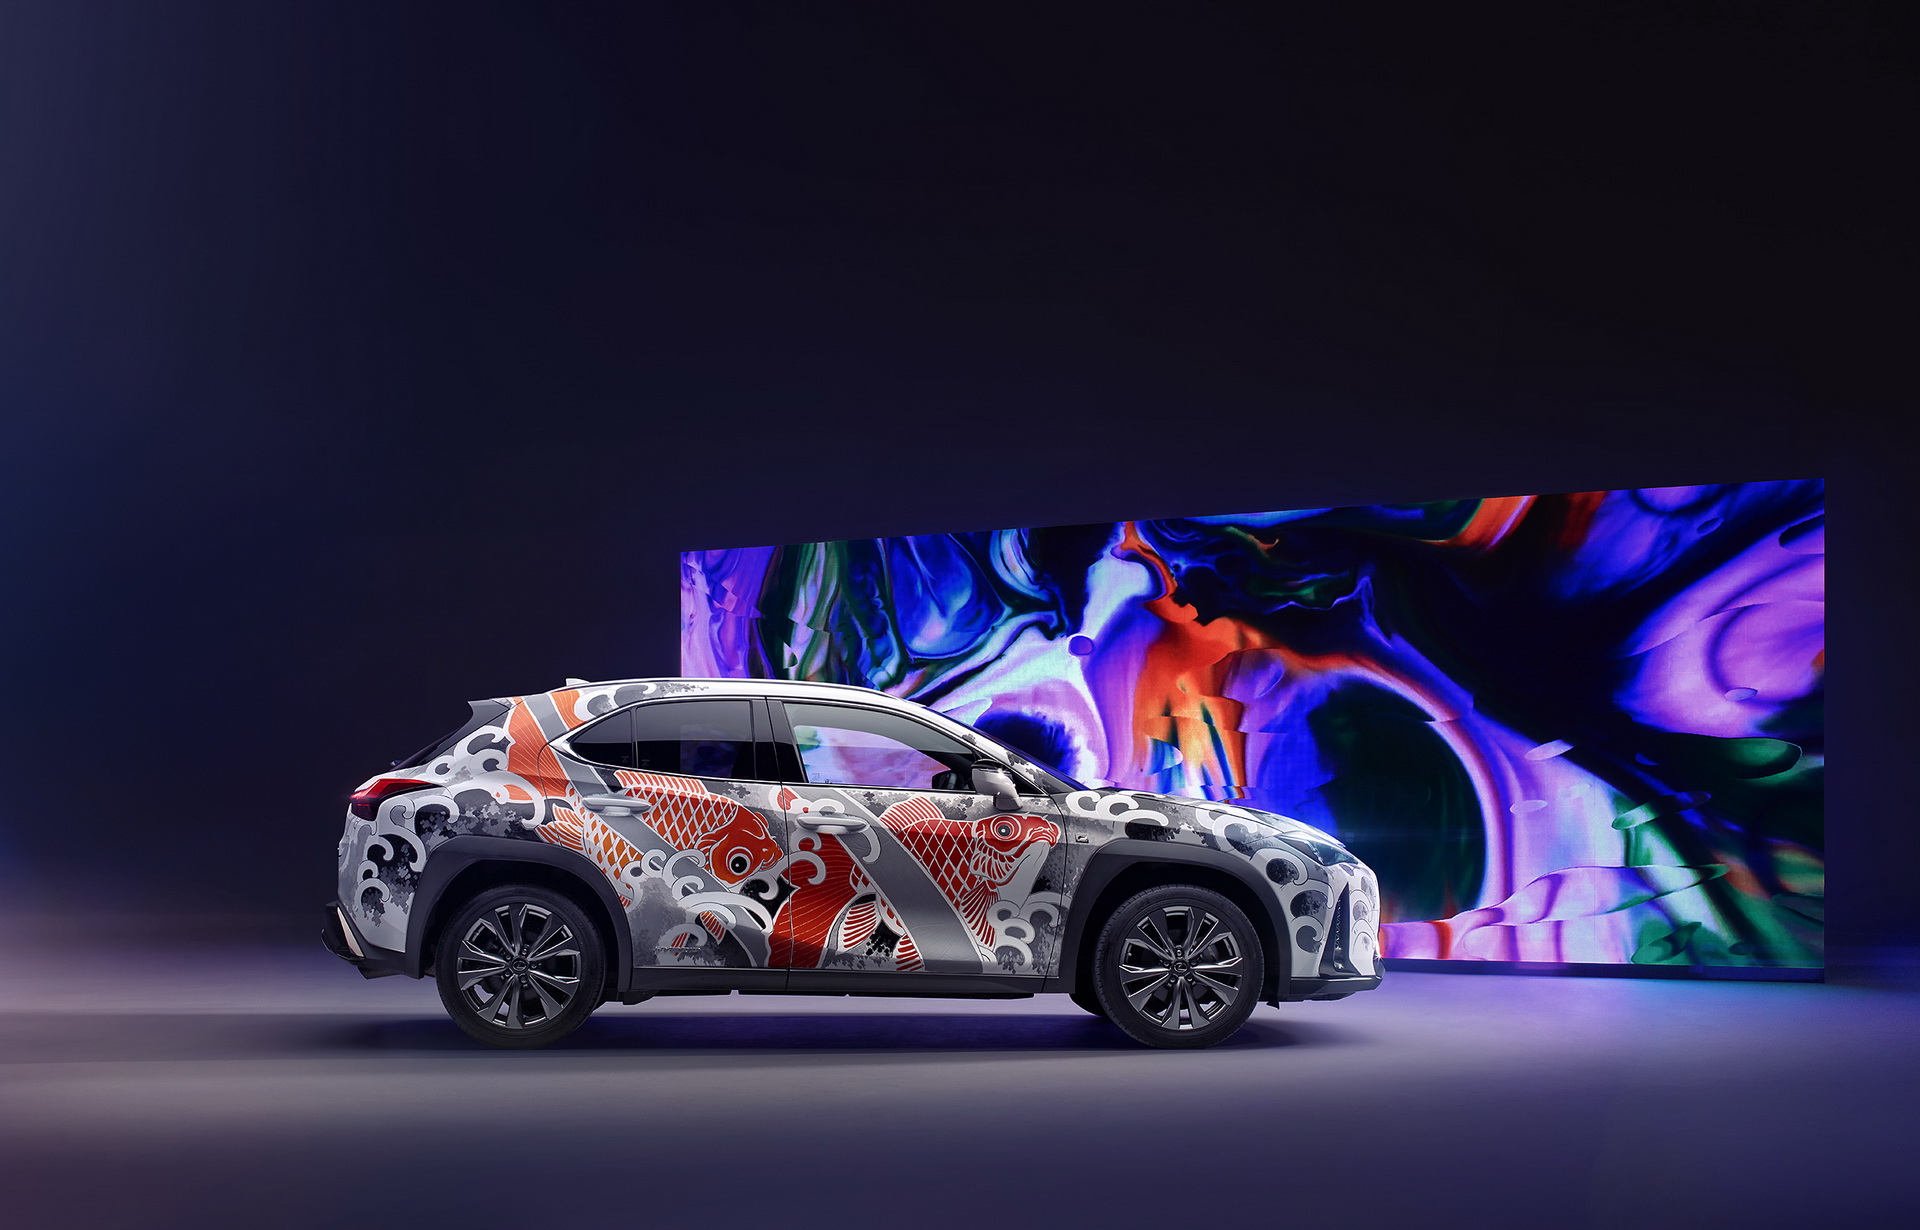 2020-lexus-ux-tatooted-car-2